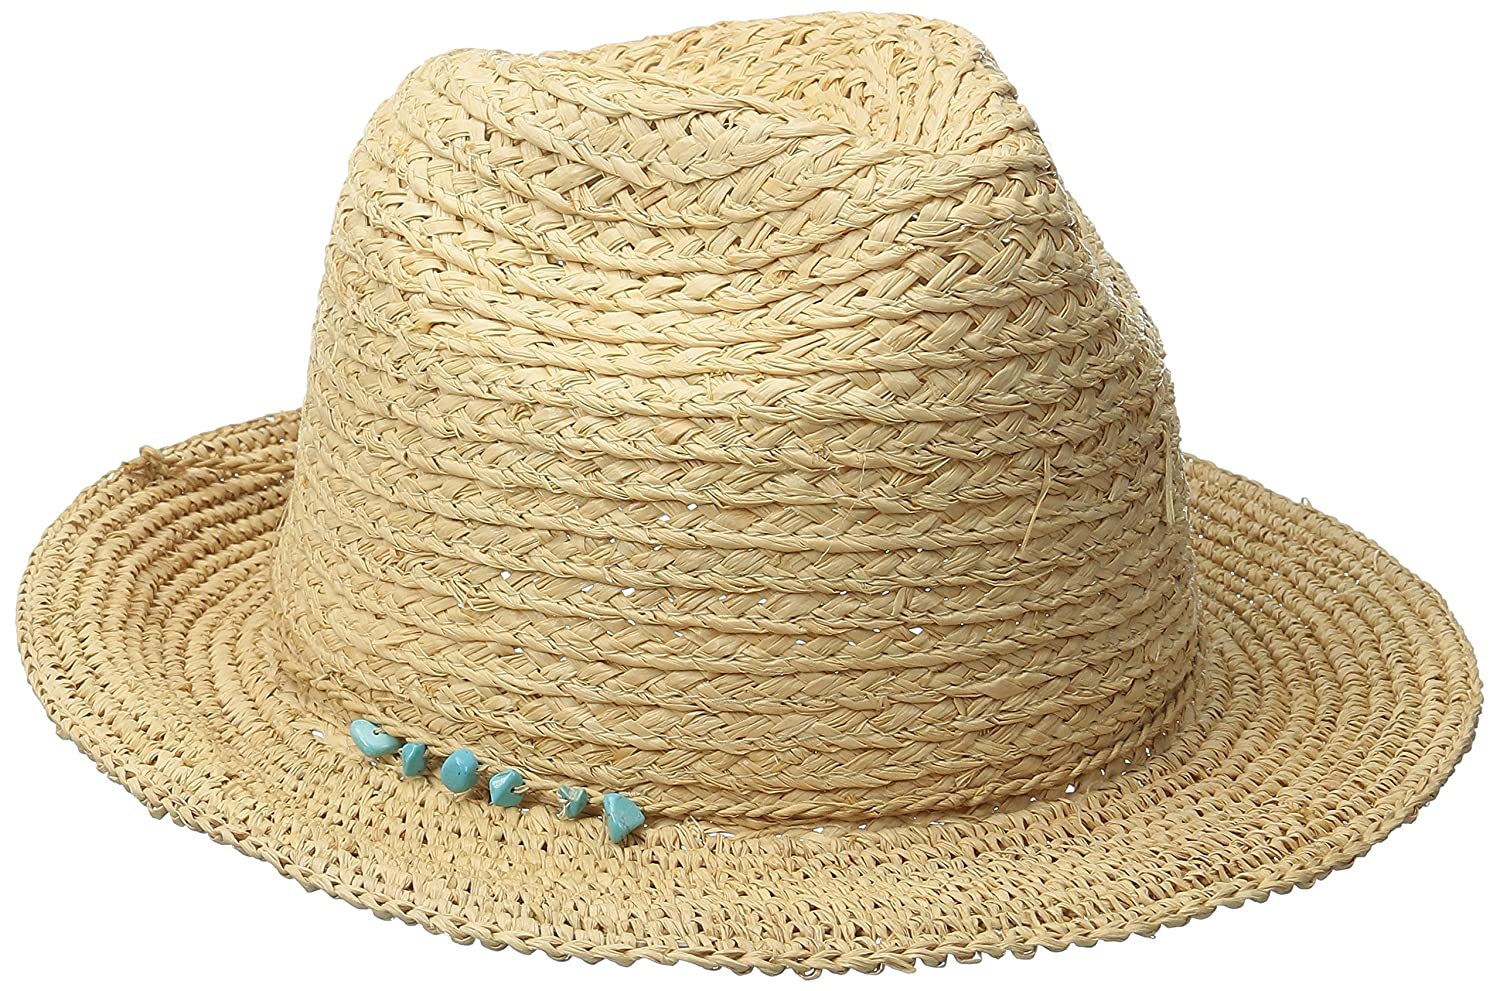 a6e981228ad558 San Diego Hat Company Women's Fedora Hat with Crochet Brim and Turquoise  Trim, Natural, One Size at Amazon Women's Clothing store: